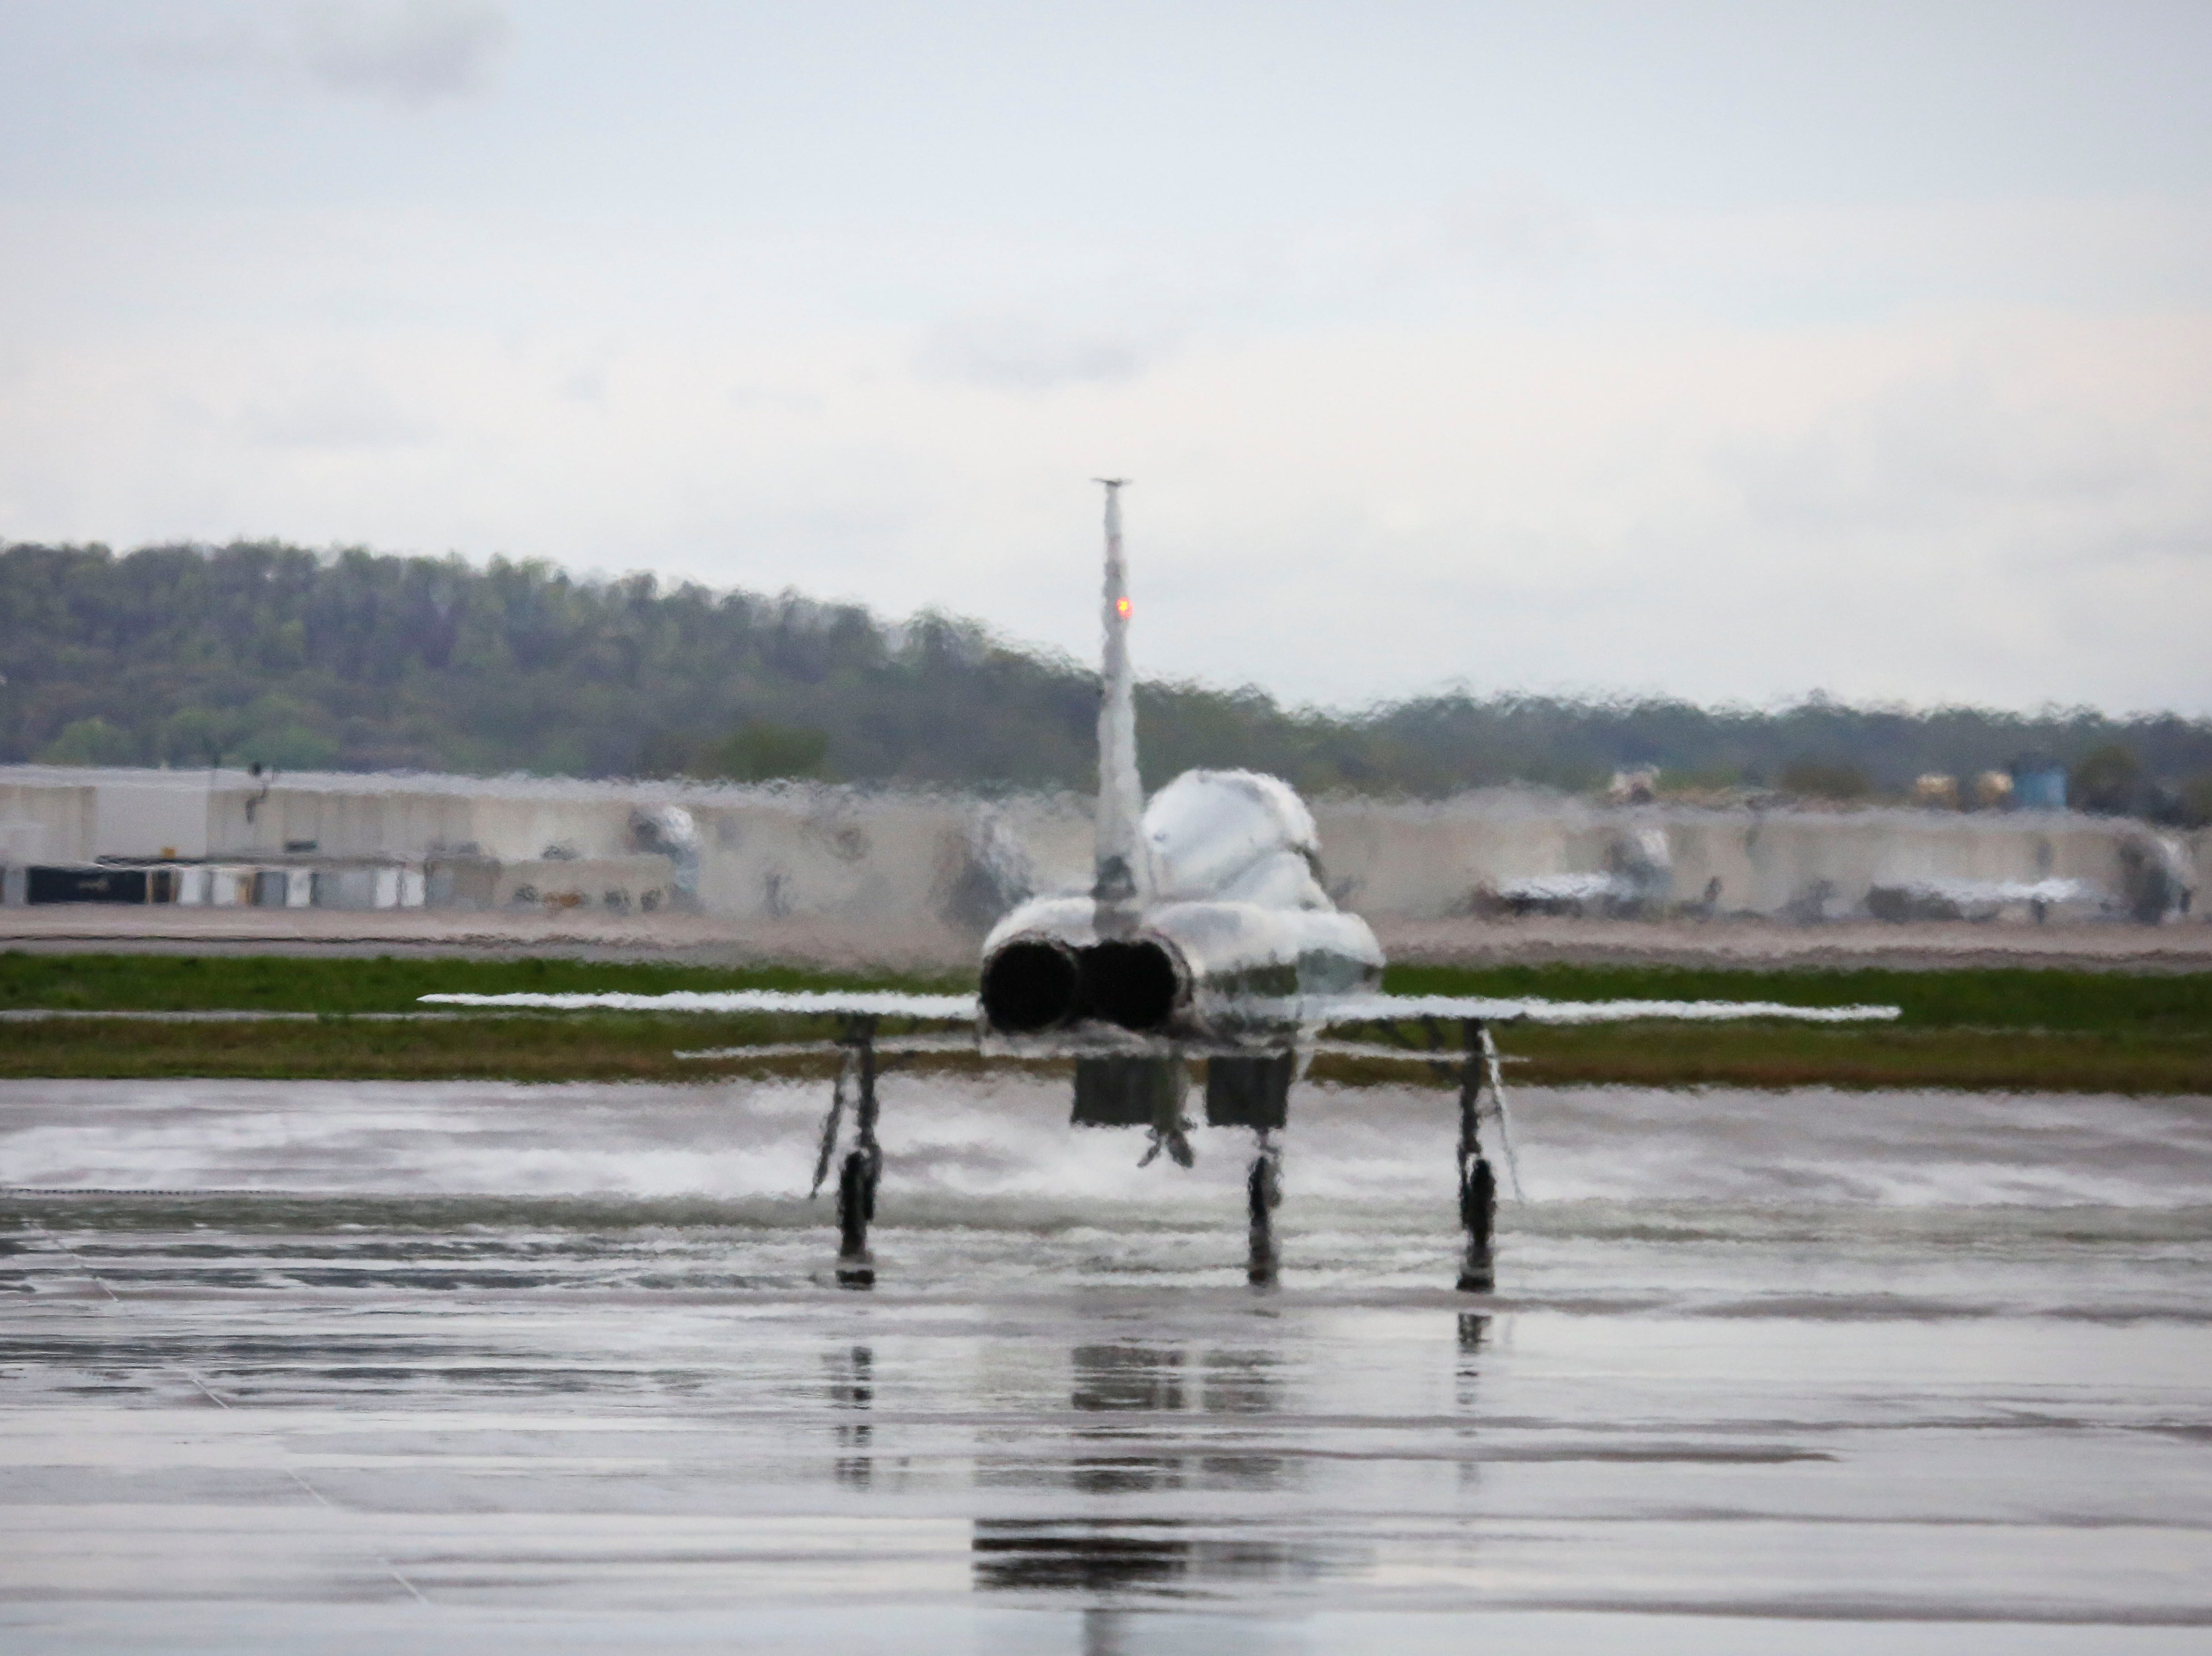 A T-38 Talon, a twinge supersonic jet trainer, taxis on the runway at the Kentucky Air National Guard ahead of practice for Thunder Over Louisville in Louisville, Ky. on Friday, April 12, 2019.